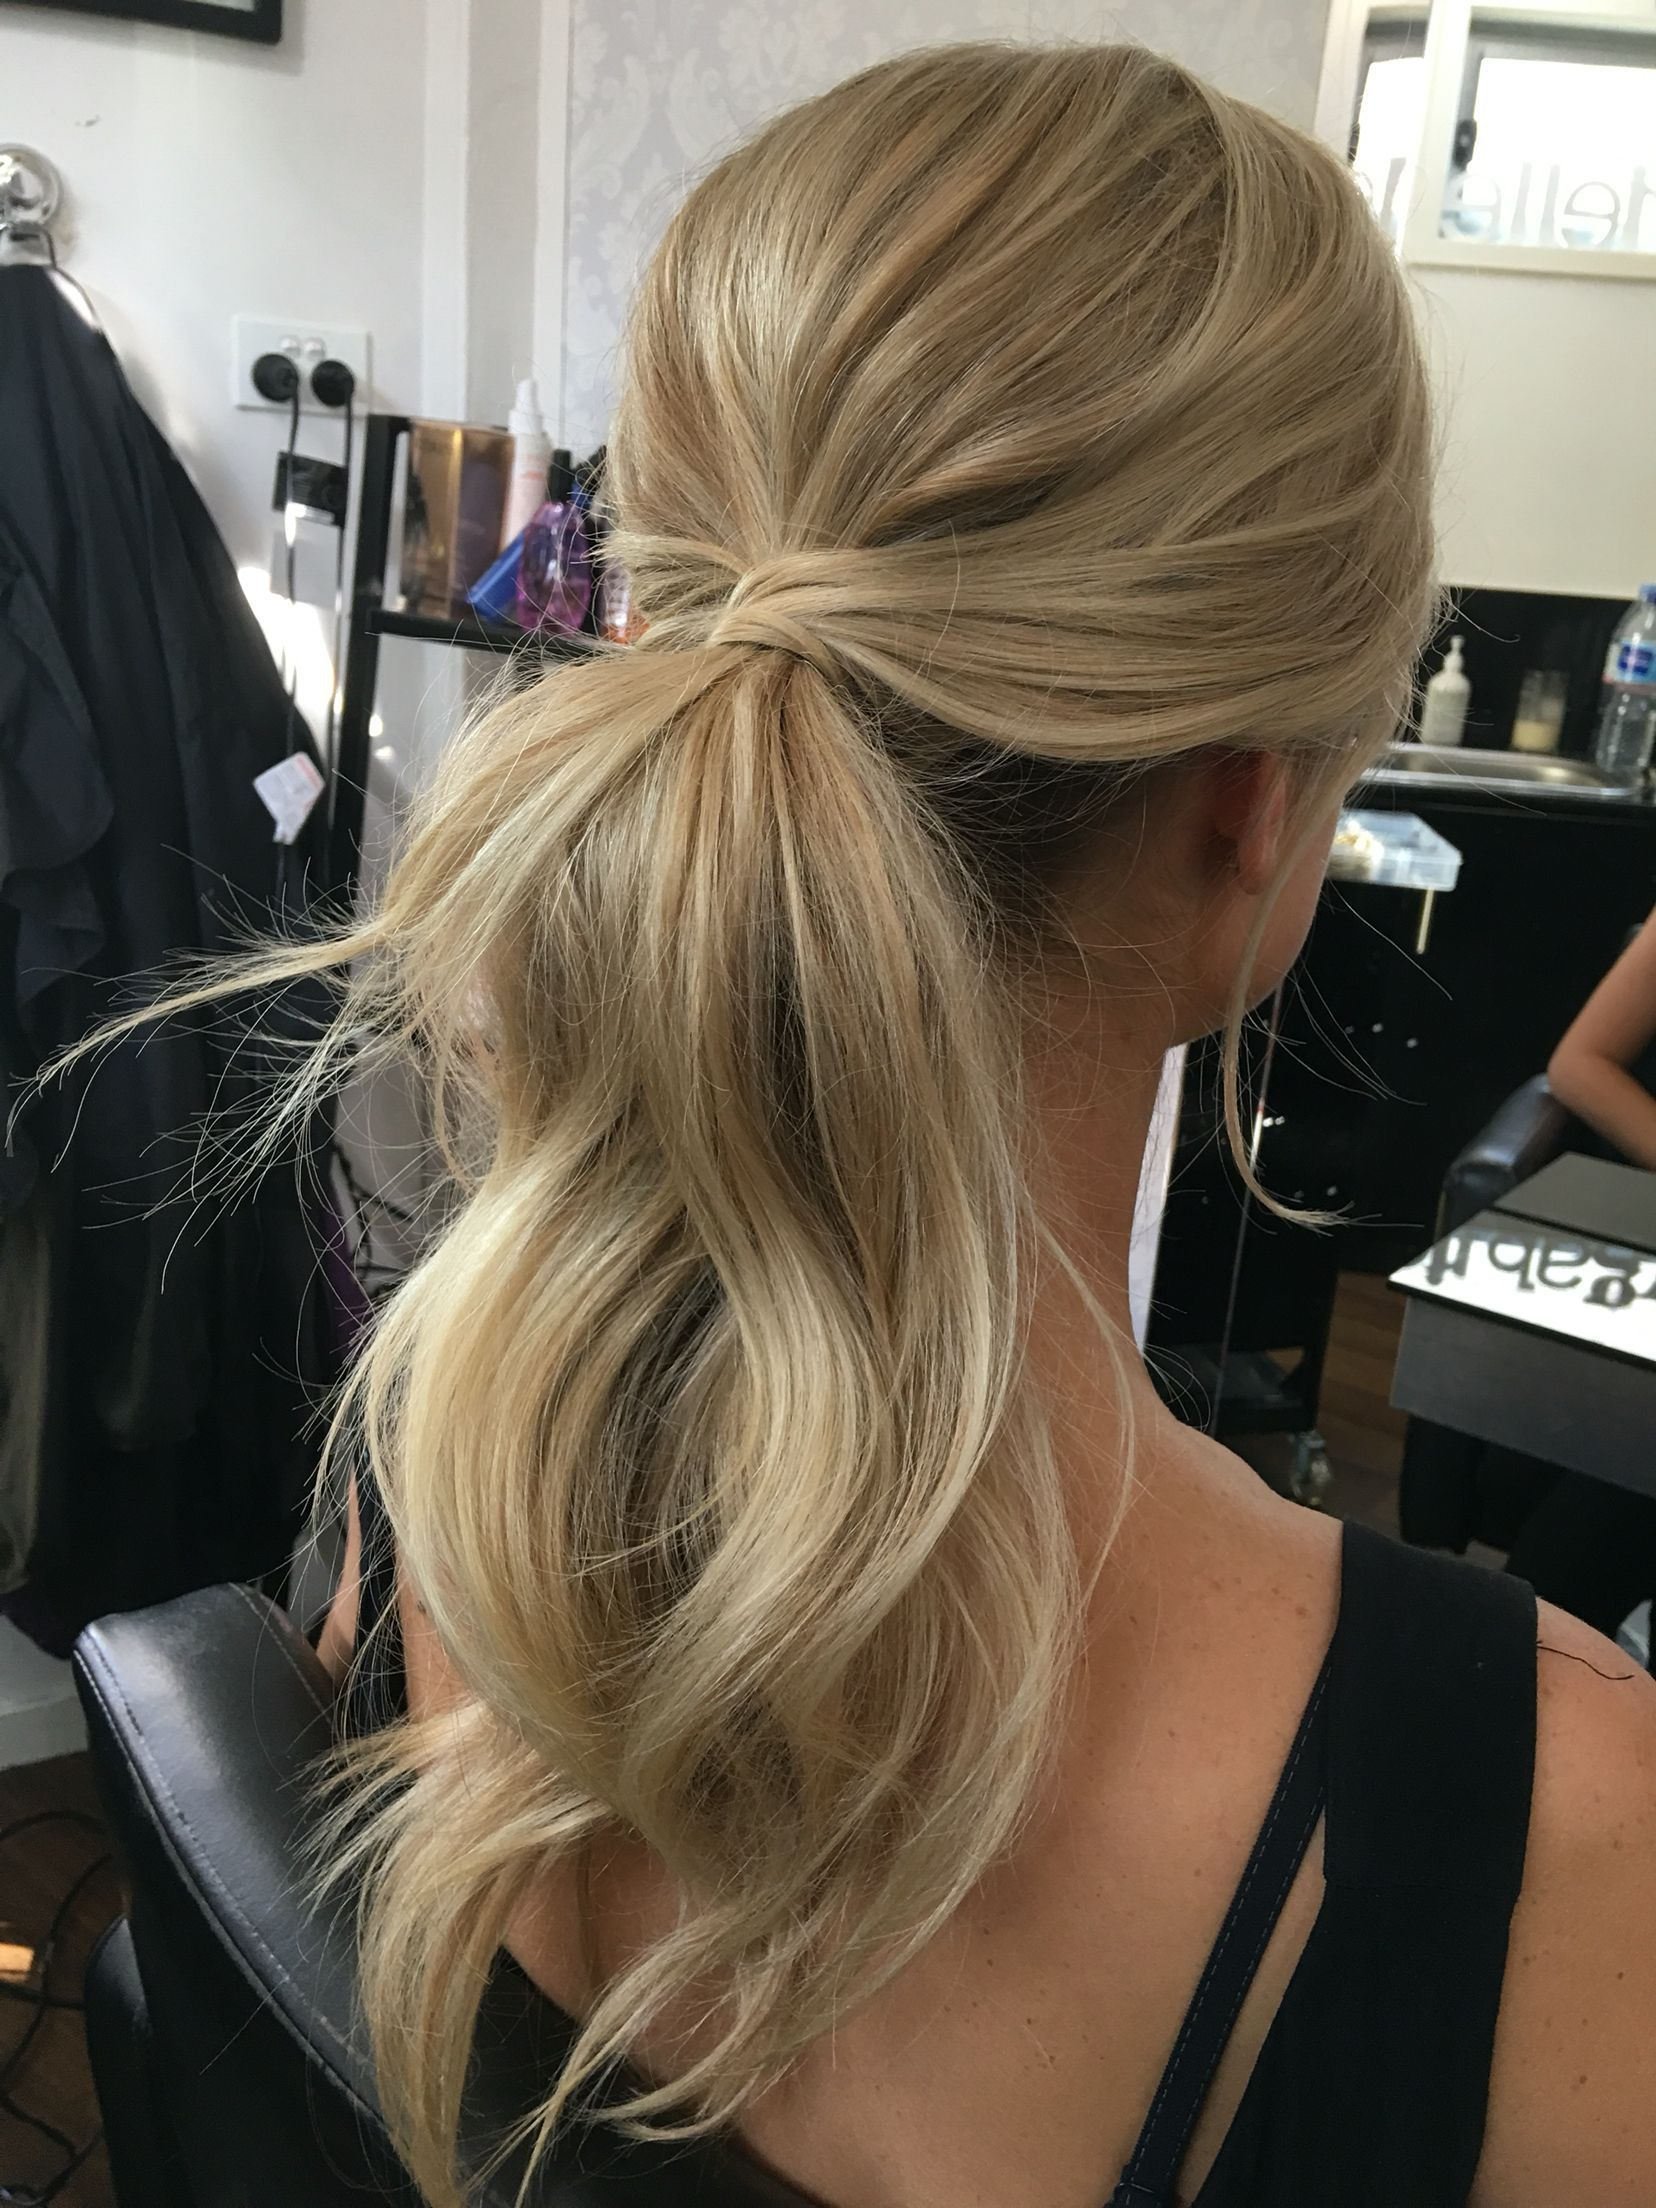 50 Bridesmaid Hairstyles For Your Big Day